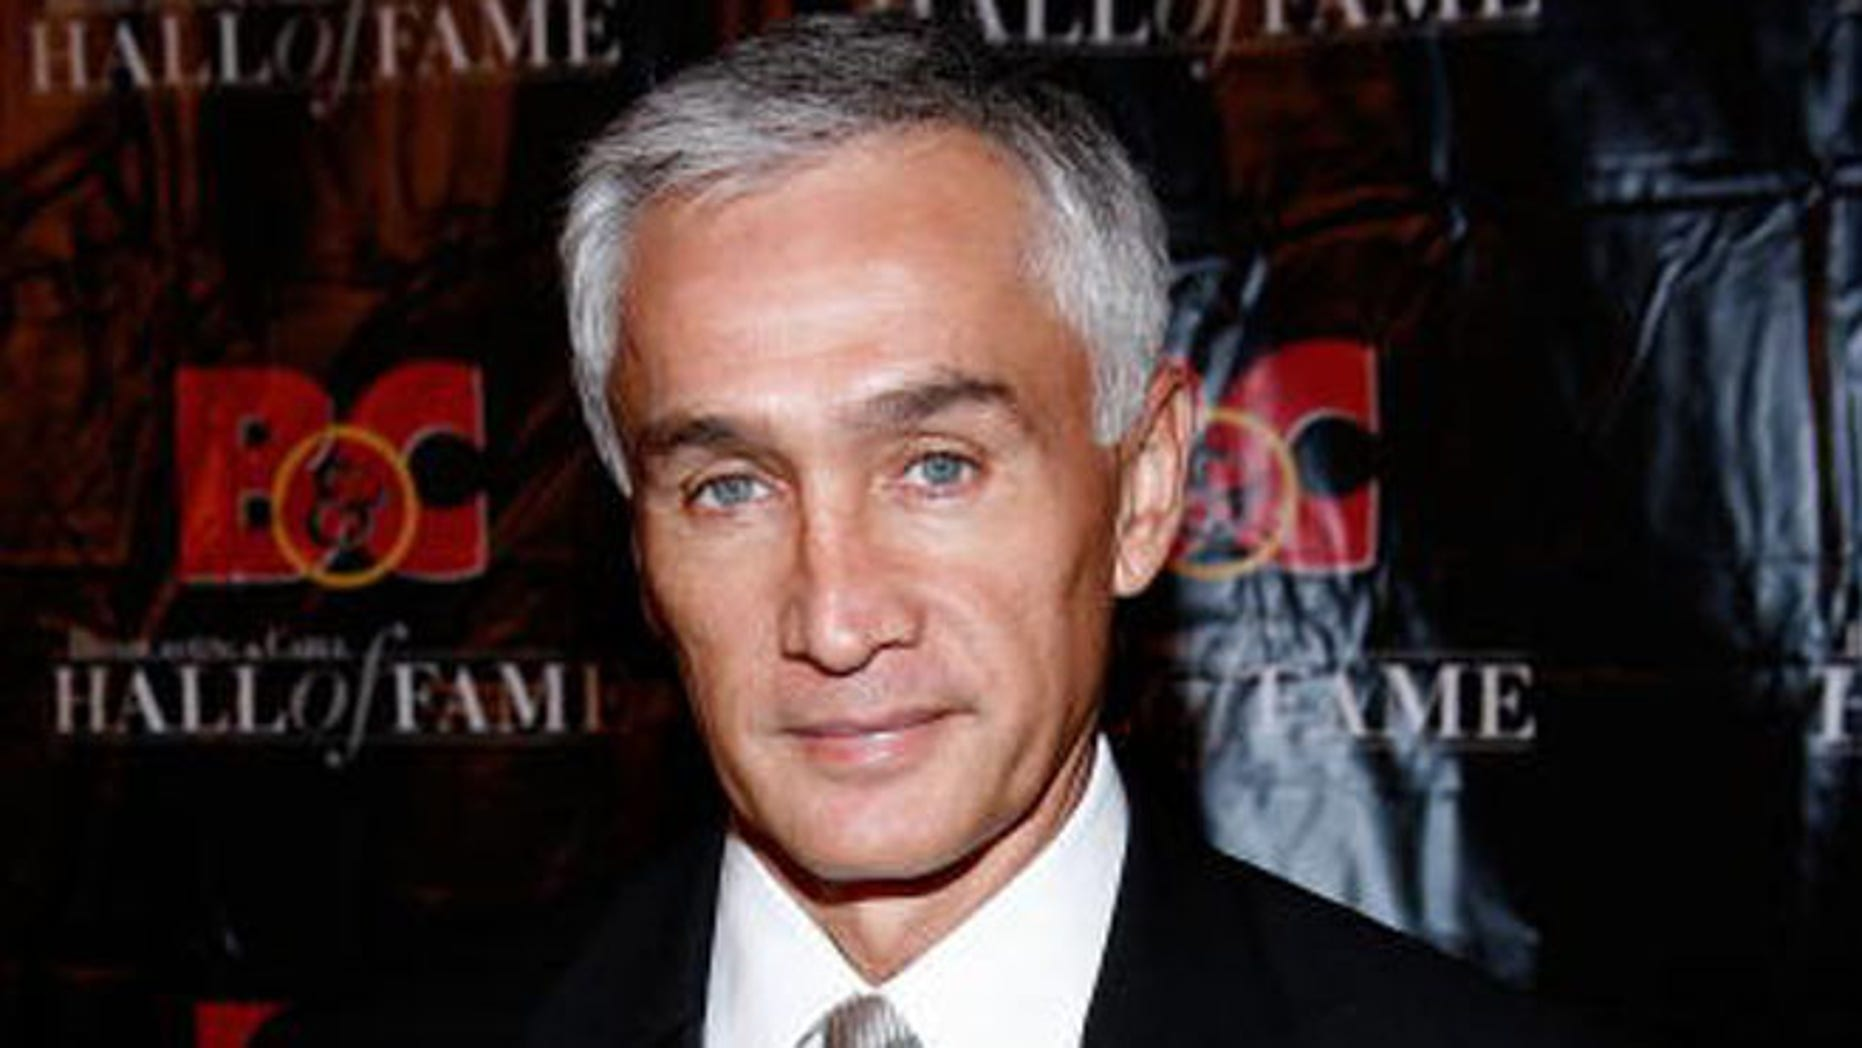 NEW YORK - OCTOBER 20:  Univision news anchor Jorge Ramos attends the 19th Annual Broadcasting & Cable Hall of Fame Awards at The Waldorf-Astoria on October 20, 2009 in New York City.  (Photo by Andy Kropa/Getty Images)